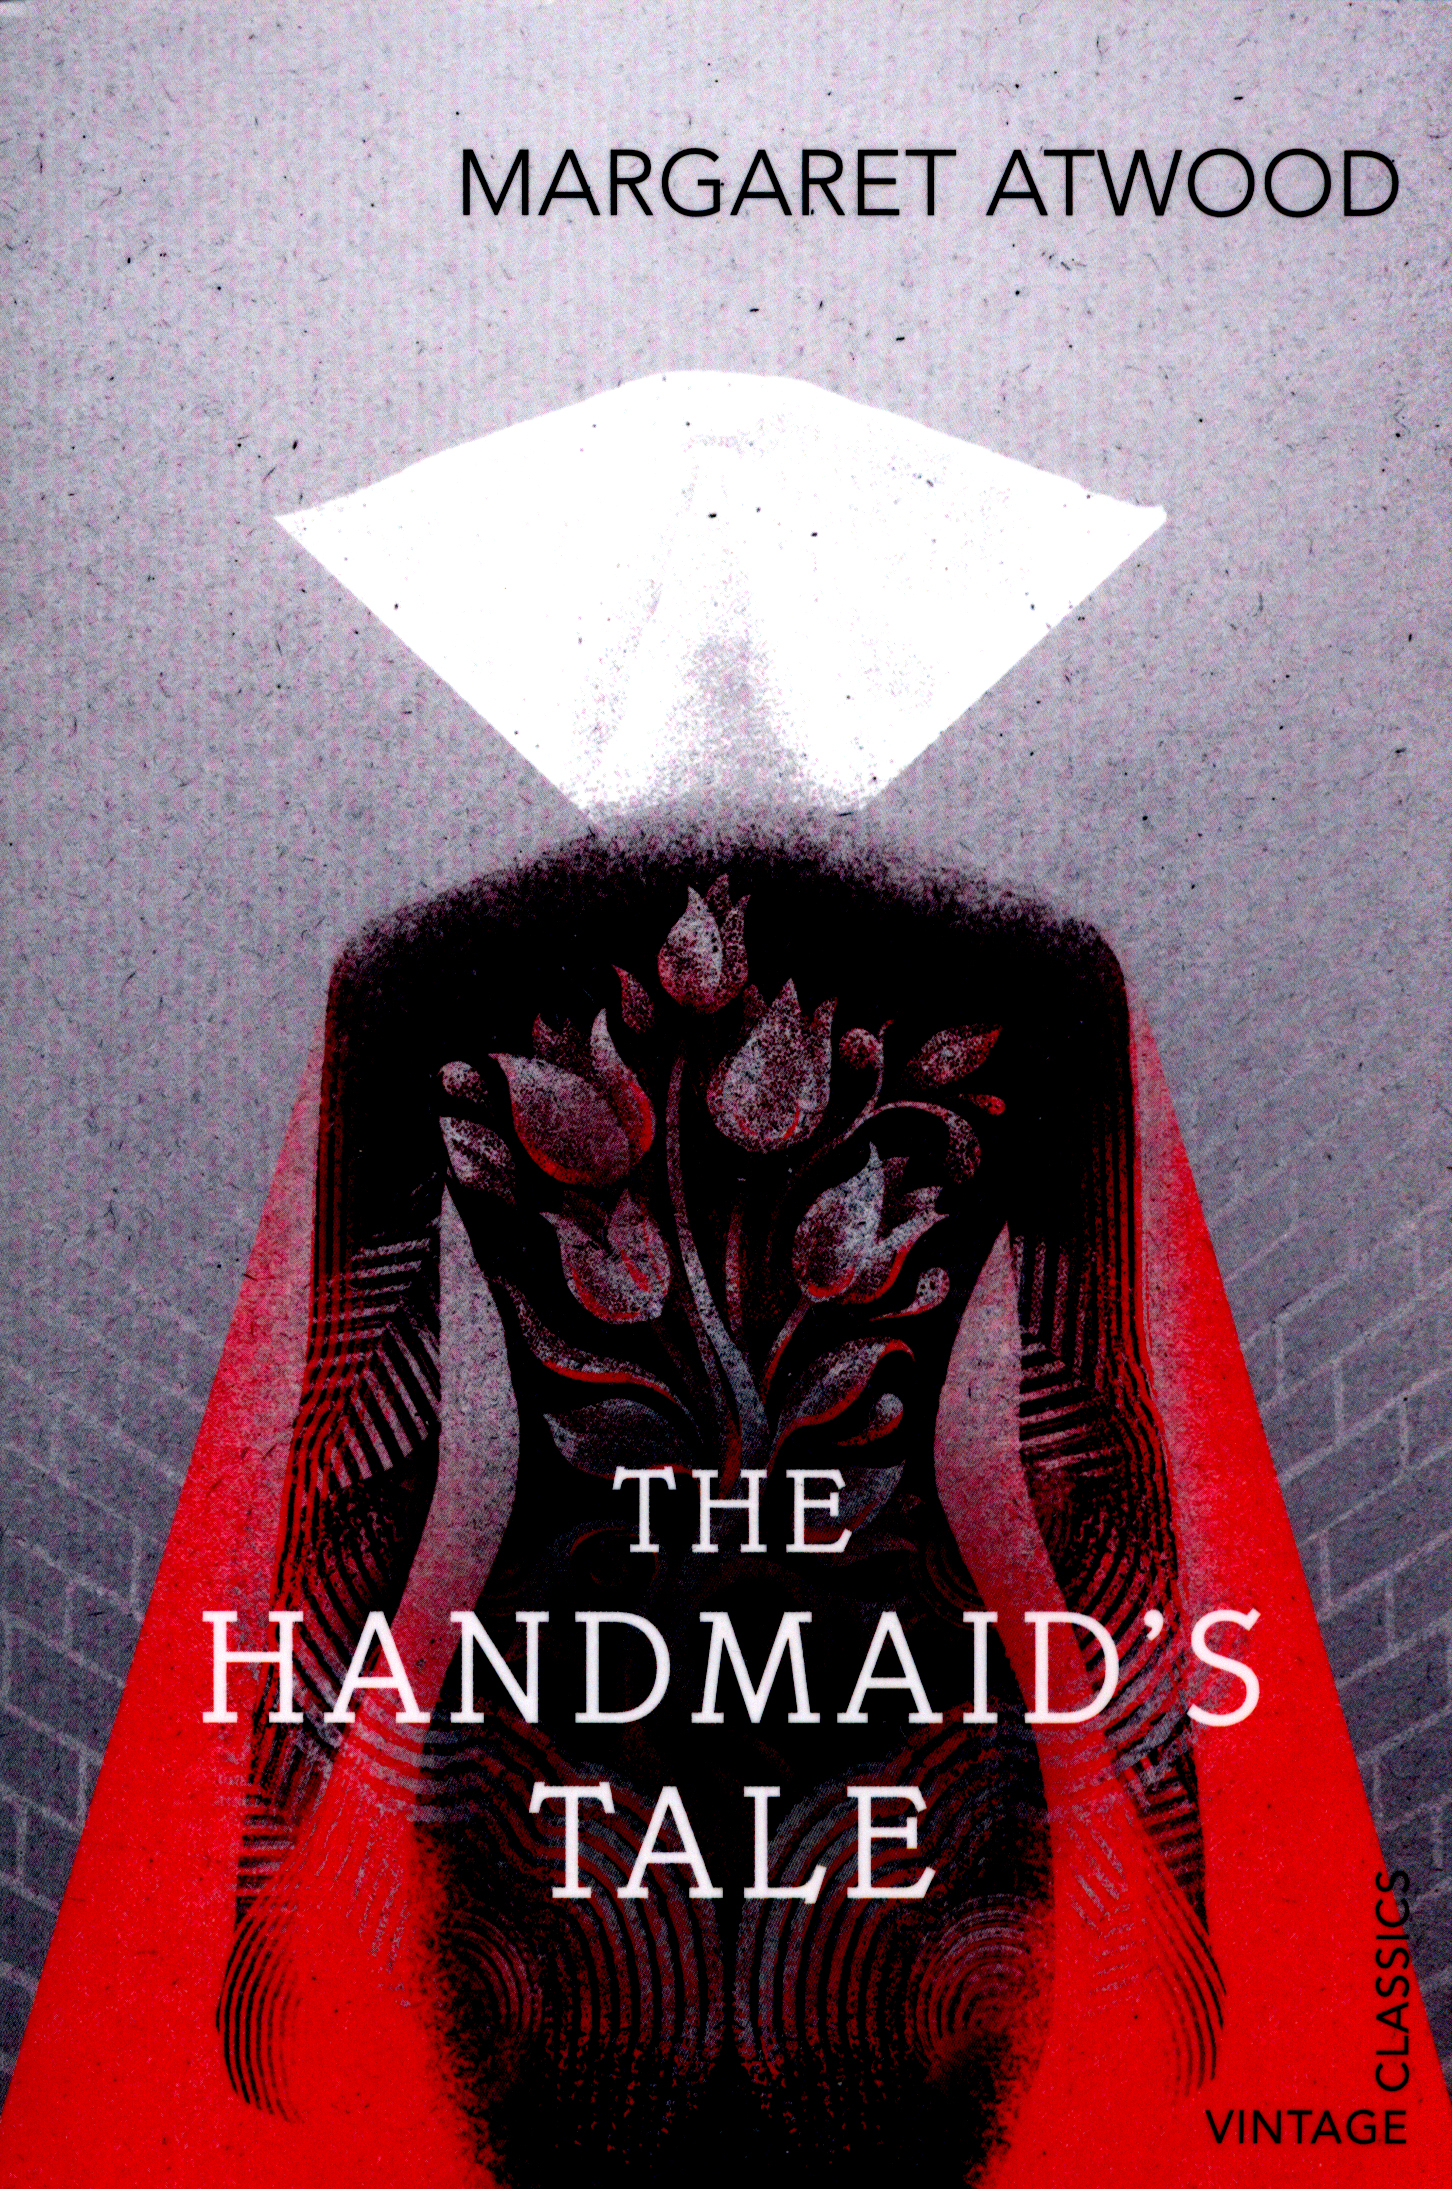 an analysis of the handmaids tale a book by margaret atwood Buy the hardcover book the handmaid's tale (deluxe) by margaret atwood at indigoca, canada's largest bookstore + get free shipping on fiction and literature books.